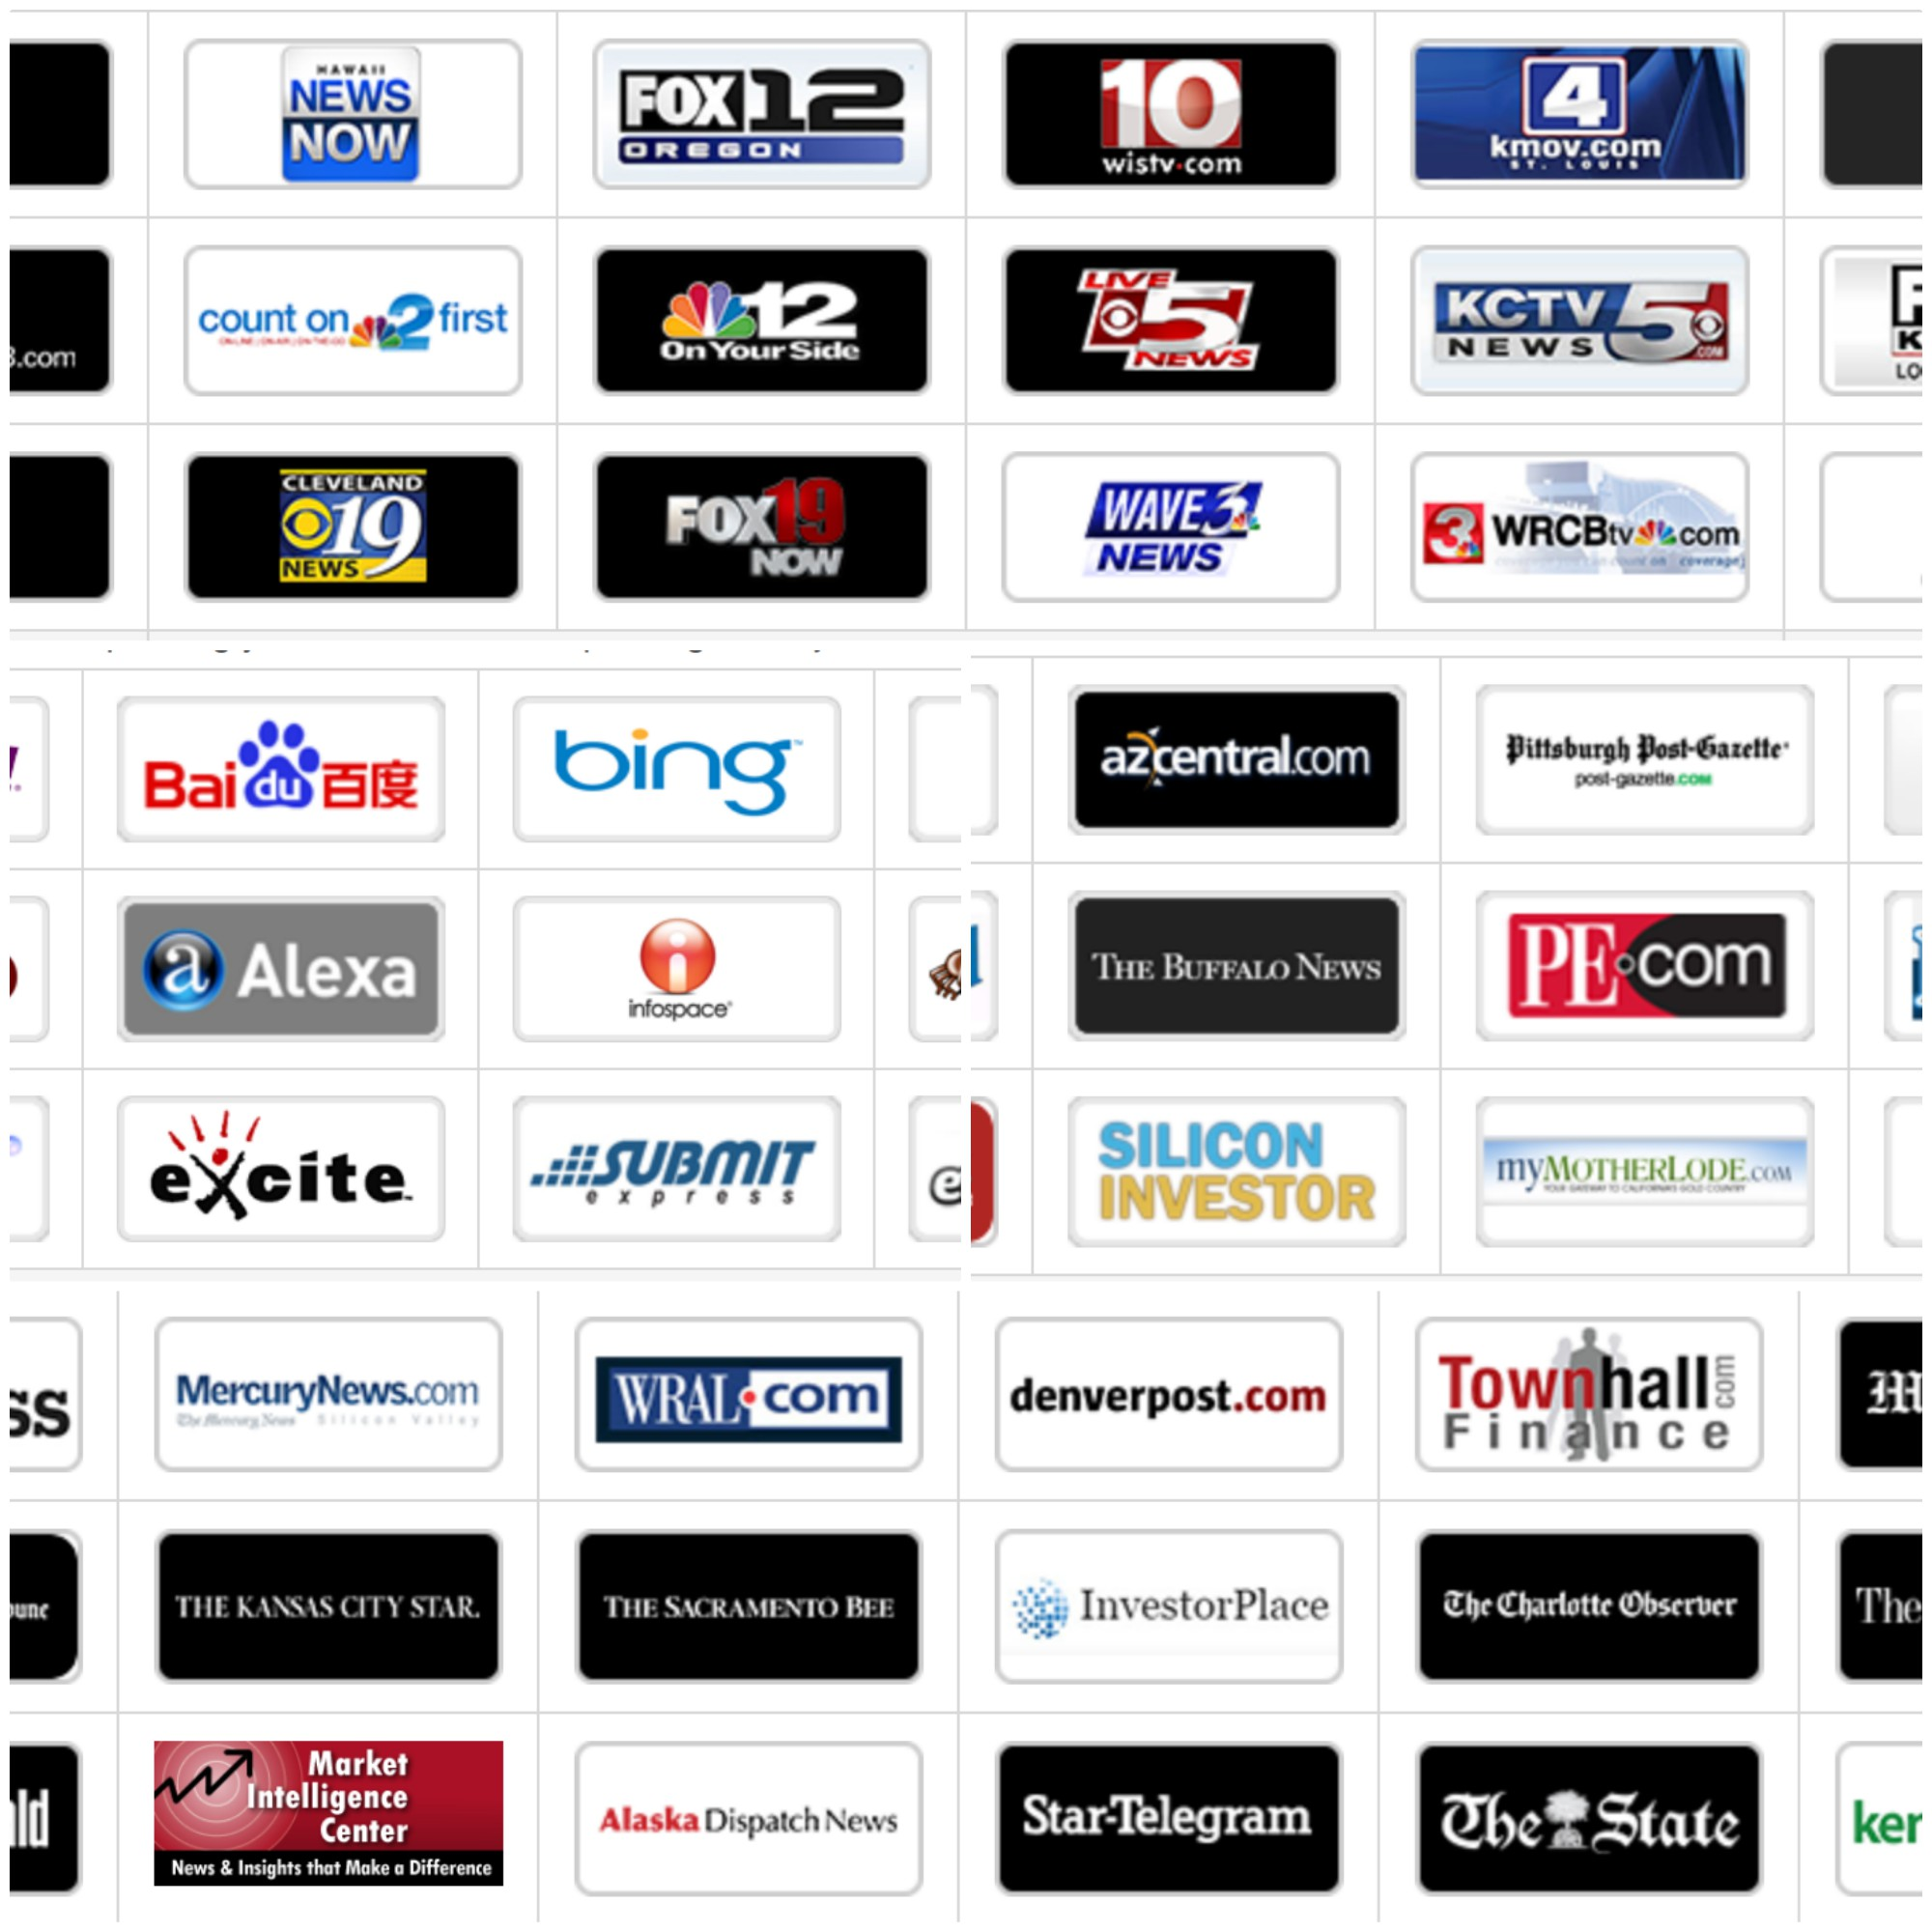 Press Release - 500+ New Sites to Build Backlinks, Rankings and Brand